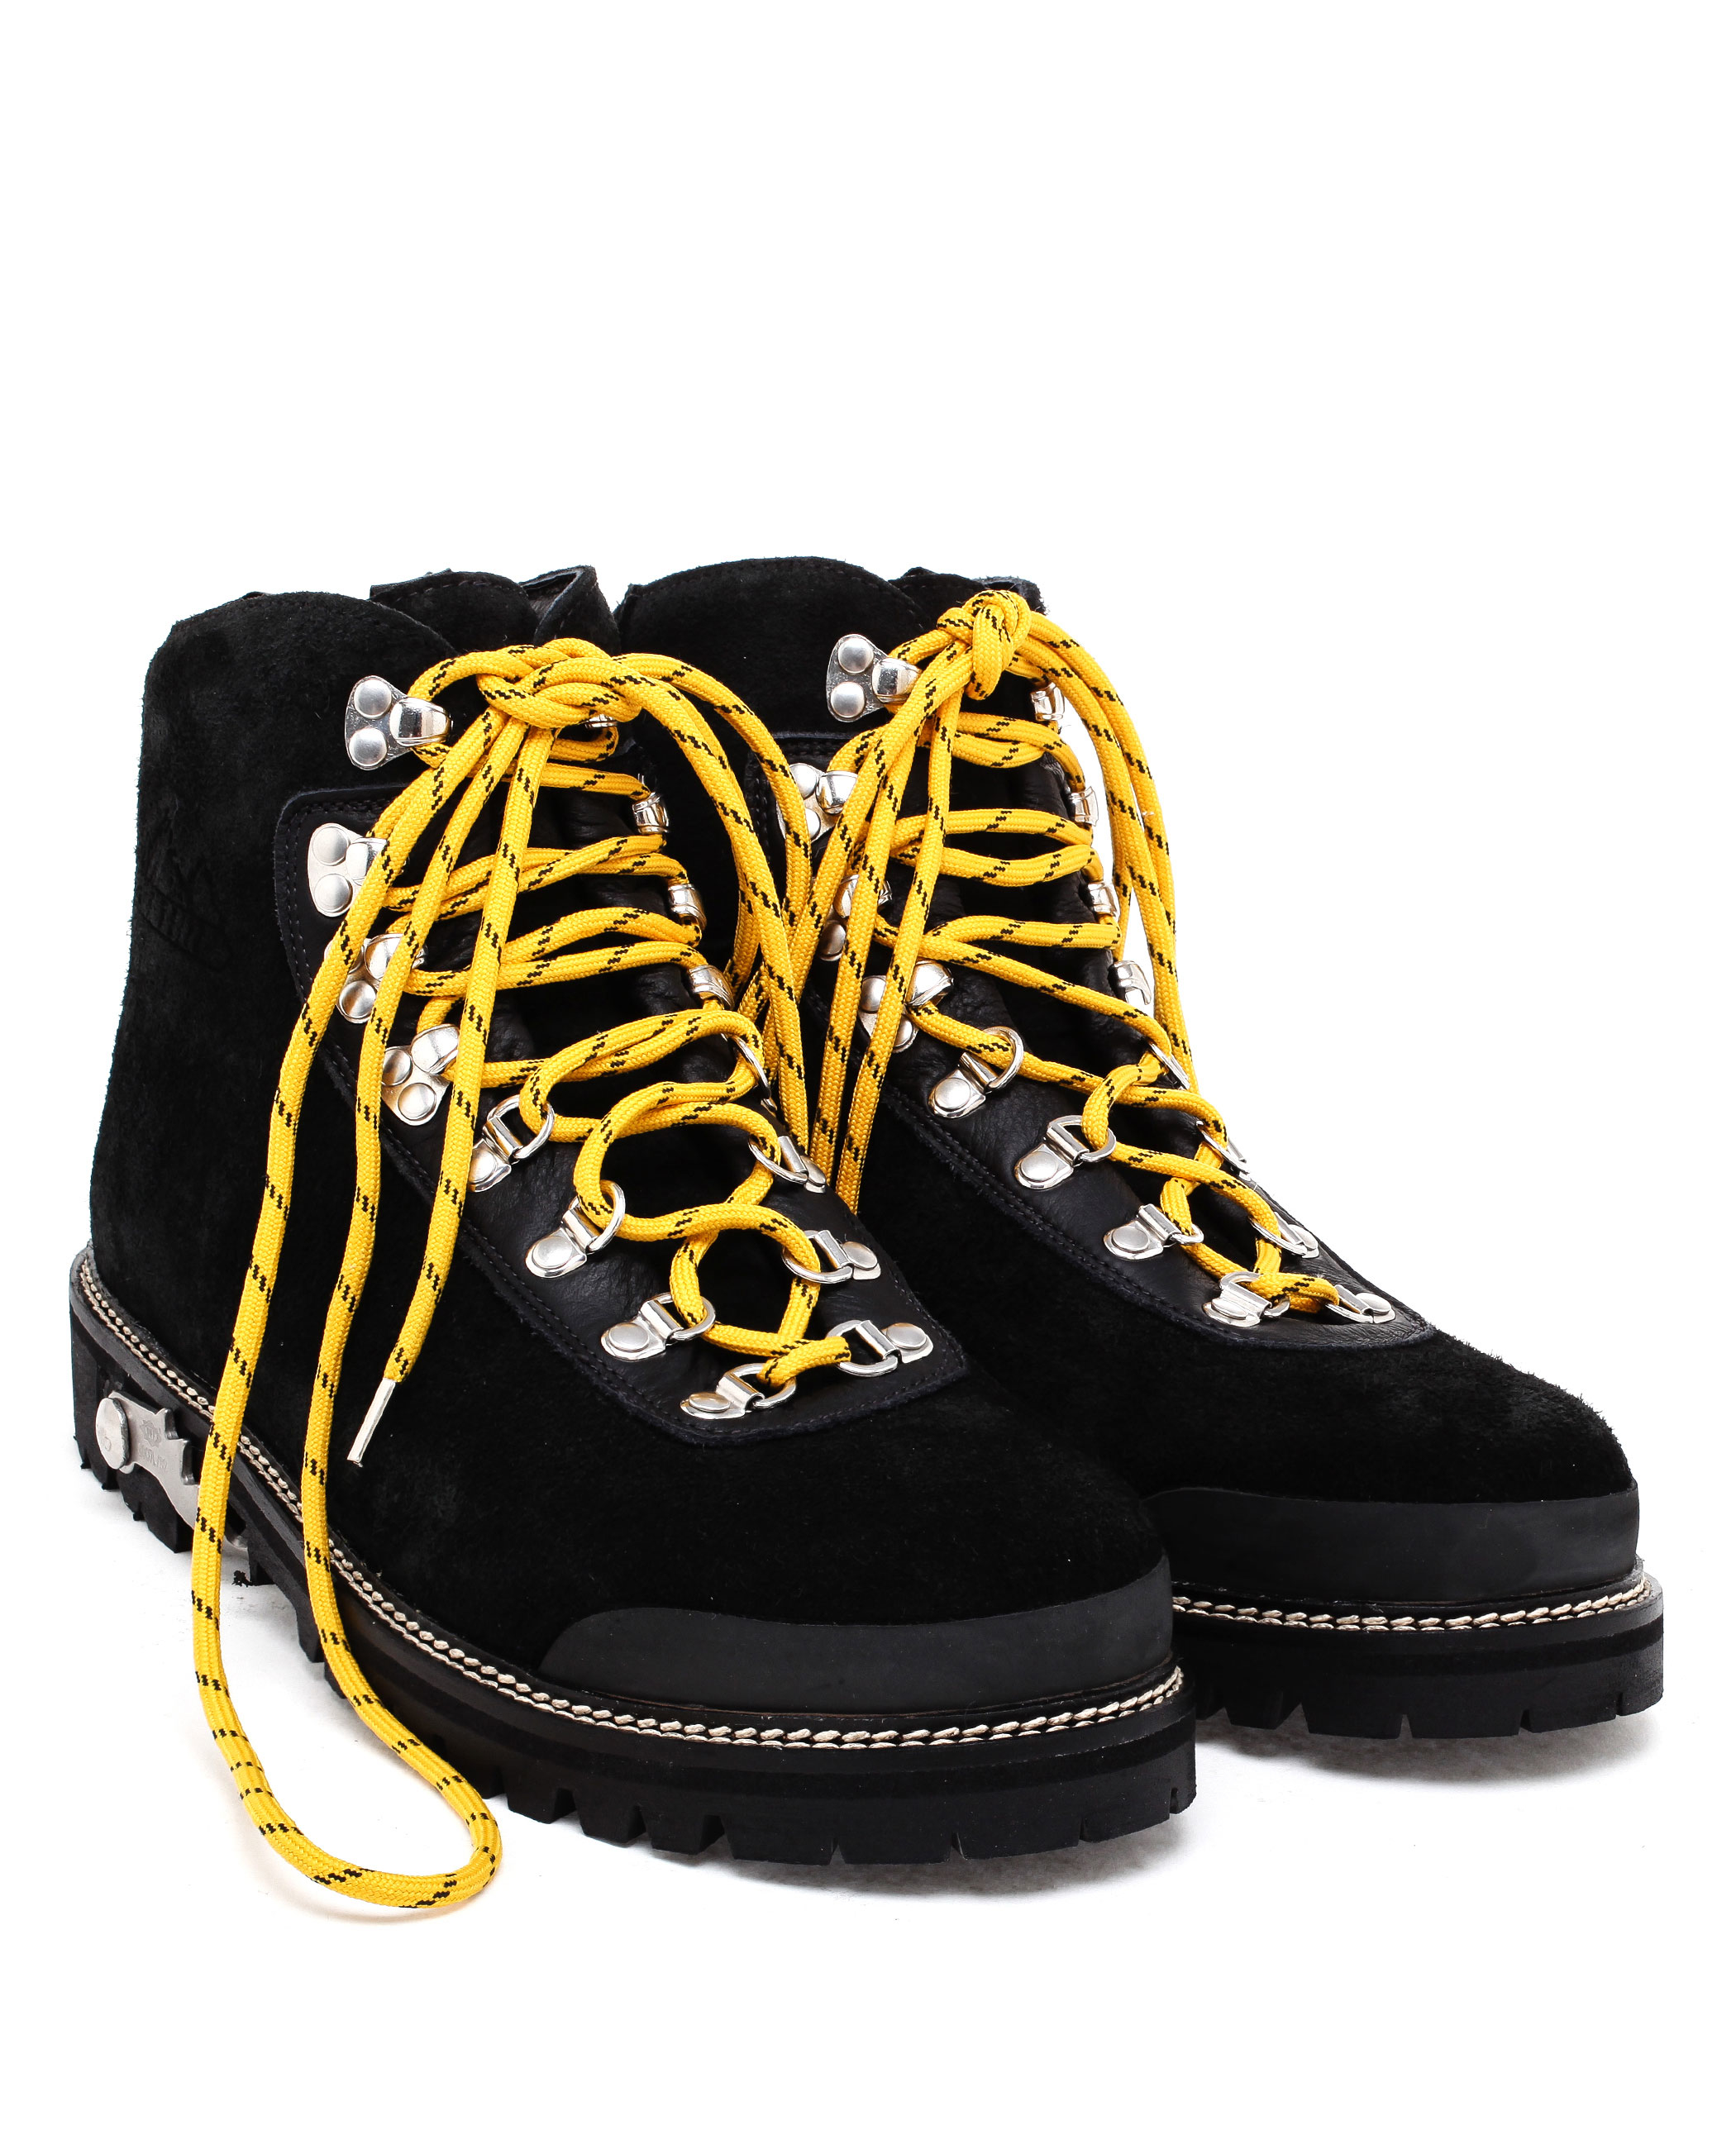 771cfb307a21 Lyst - Off-White c o Virgil Abloh Suede Hiking Boots in Black